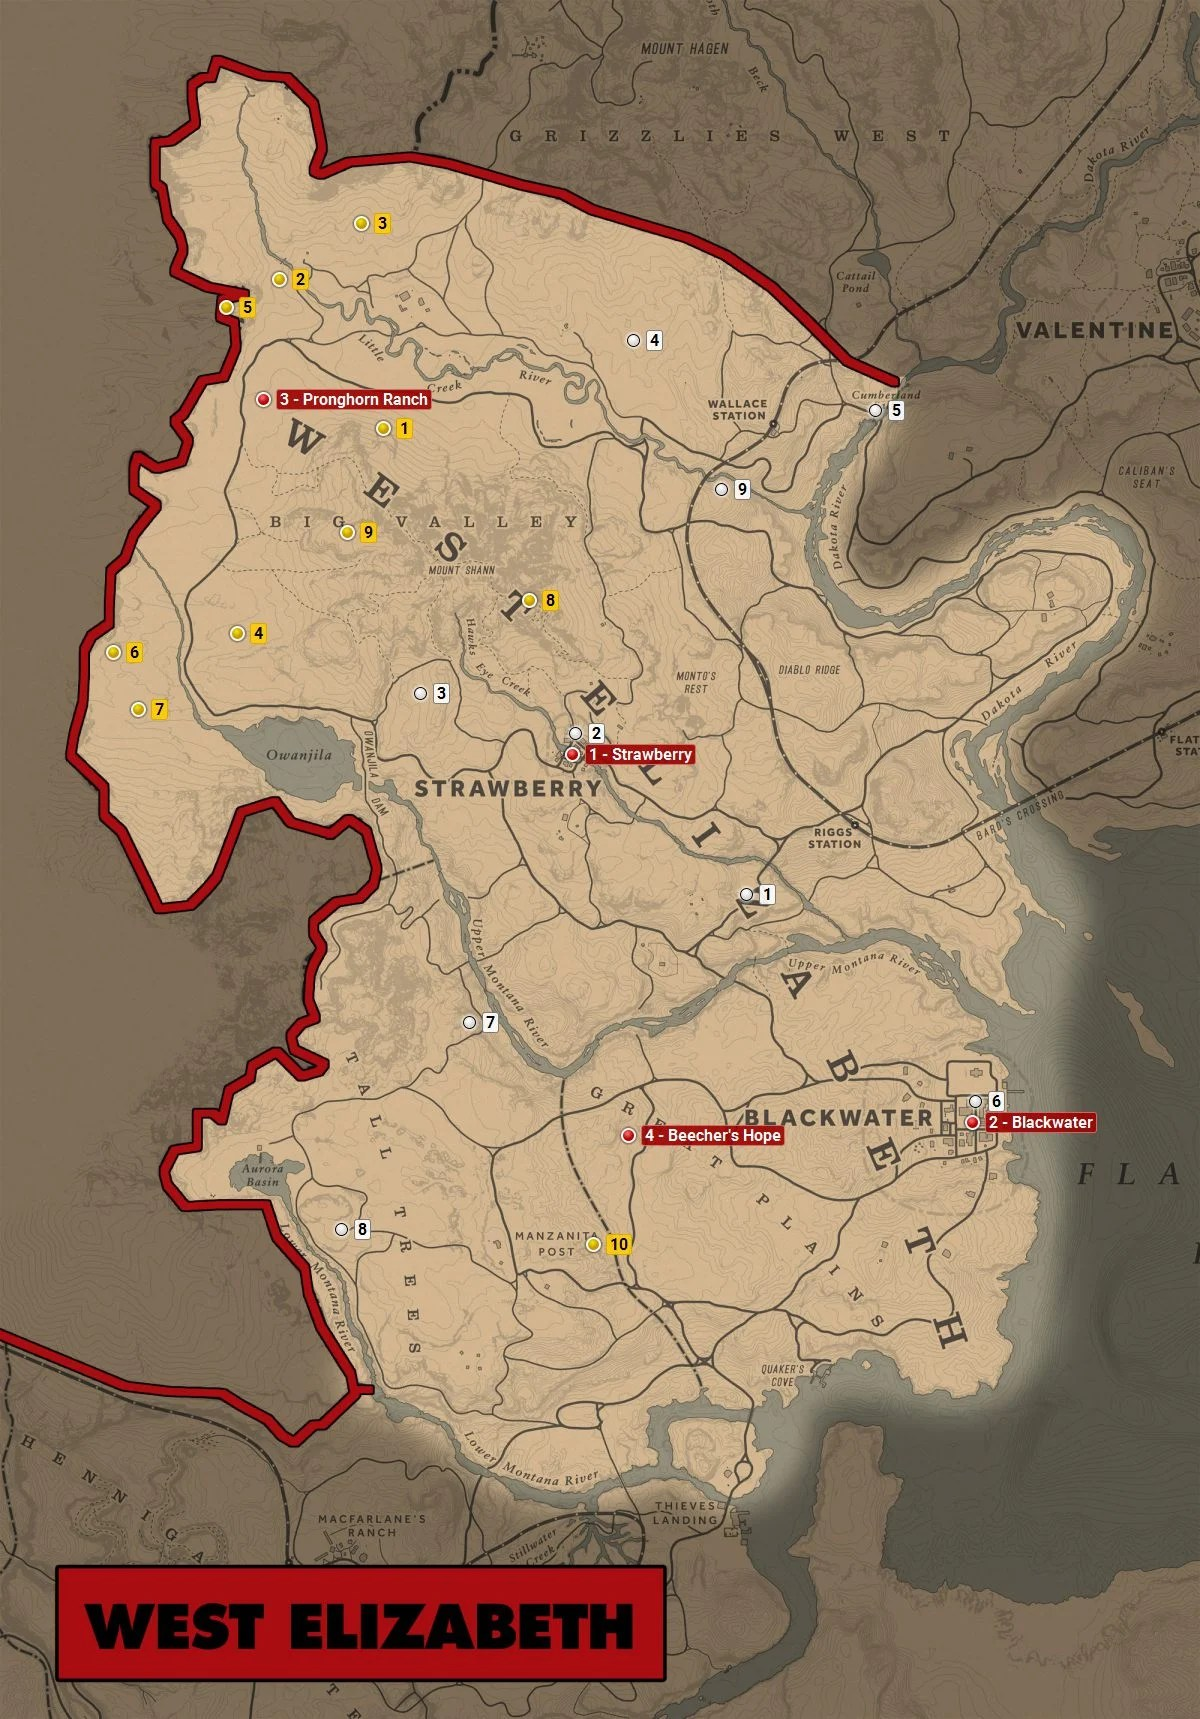 Rdr2 Trapper Locations Map : trapper, locations, Redemption, Elizabeth, World, Atlas, Guide, Gamepressure.com